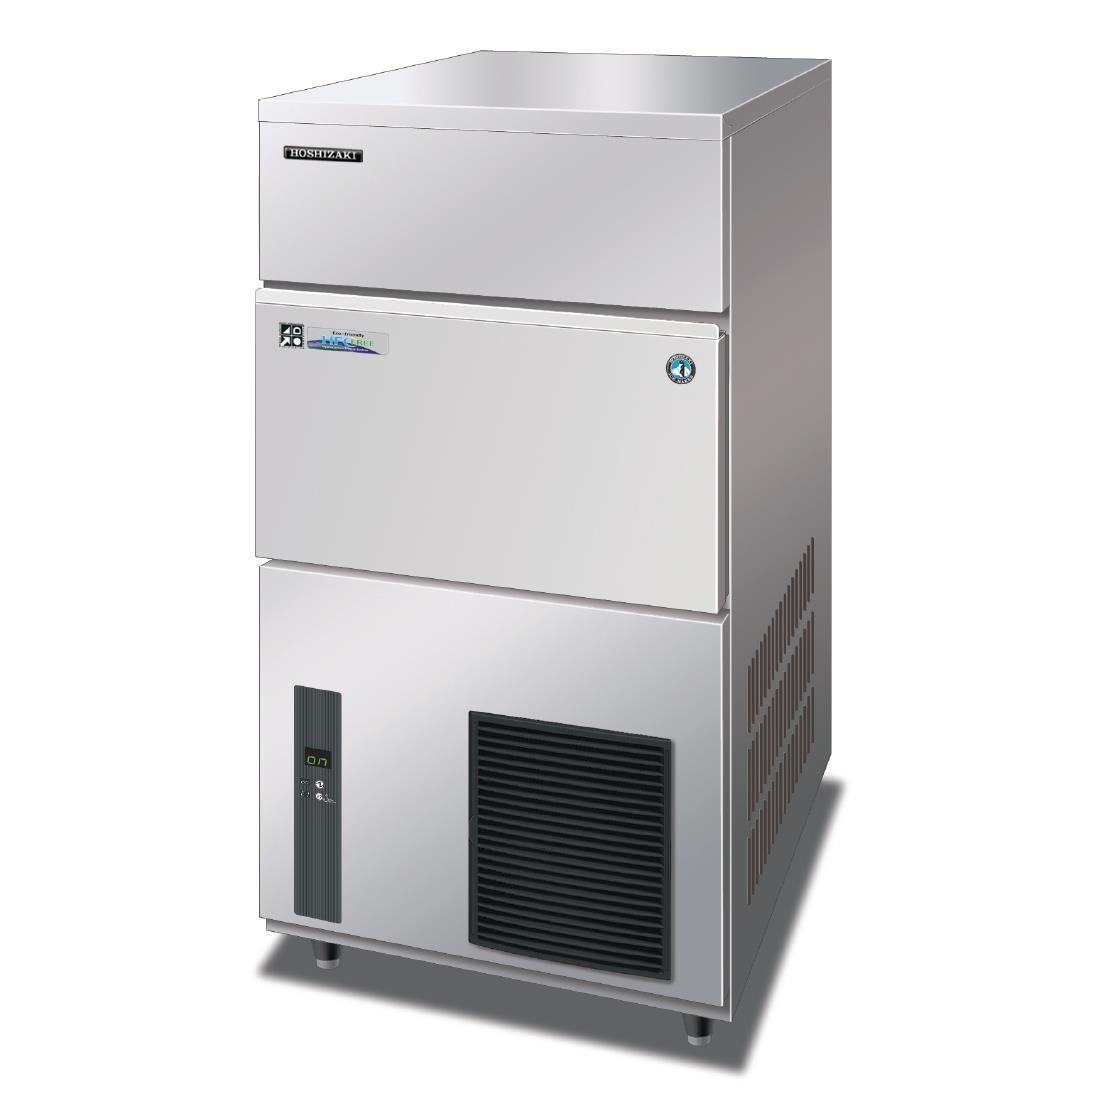 Hoshizaki Air-Cooled HFC-Free Ice Maker IM100-NE-HC-23